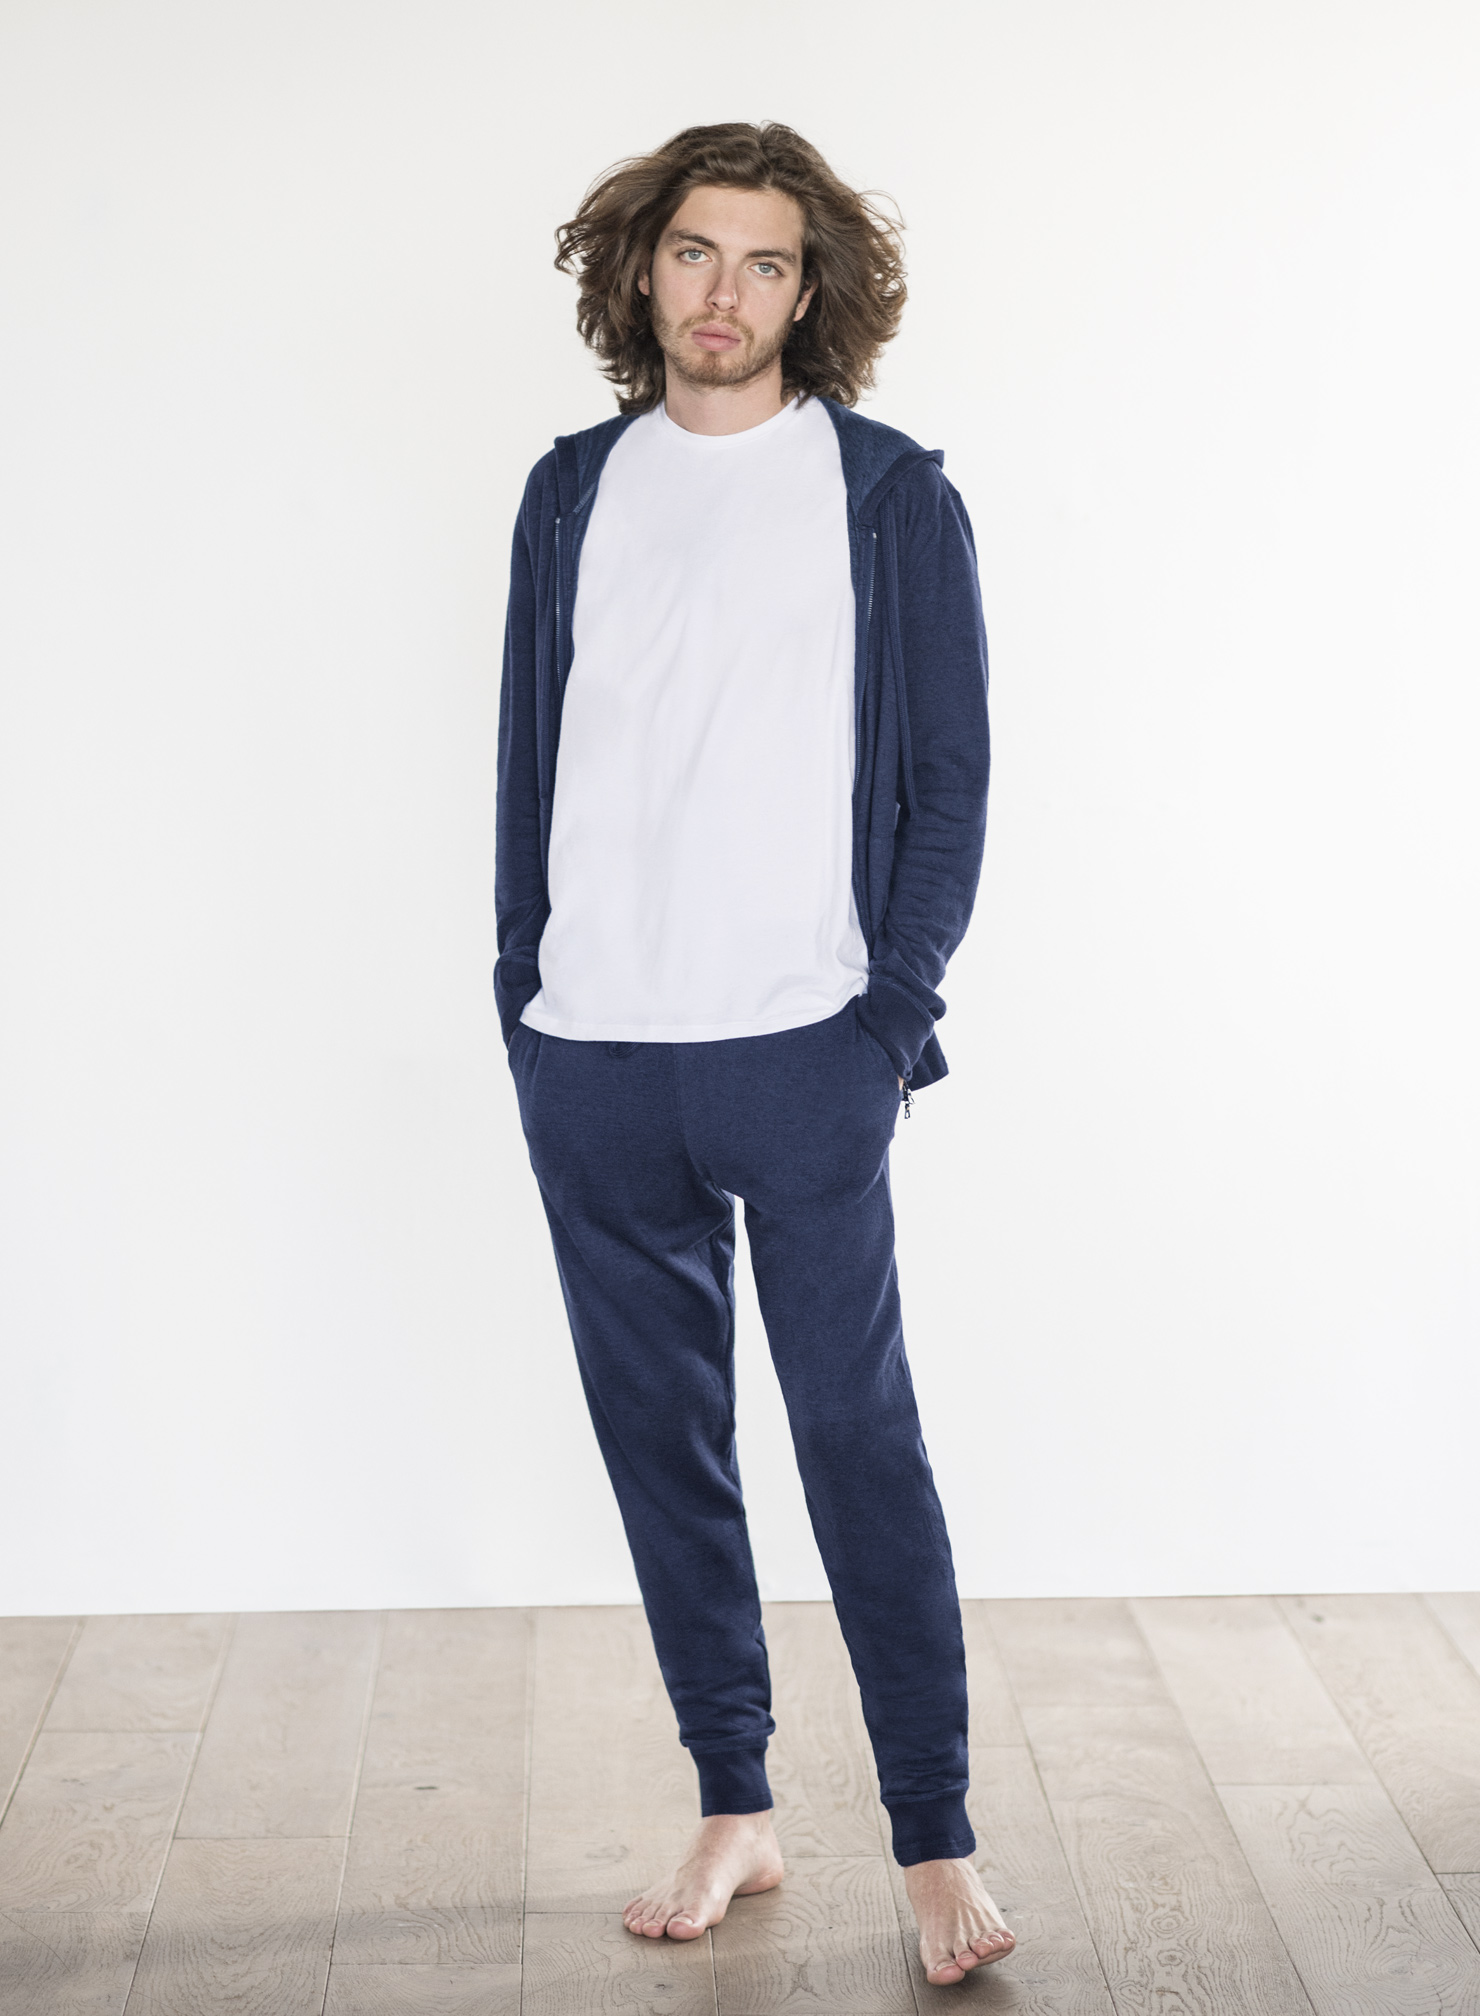 Lookbook Homme E20 - L'éponge